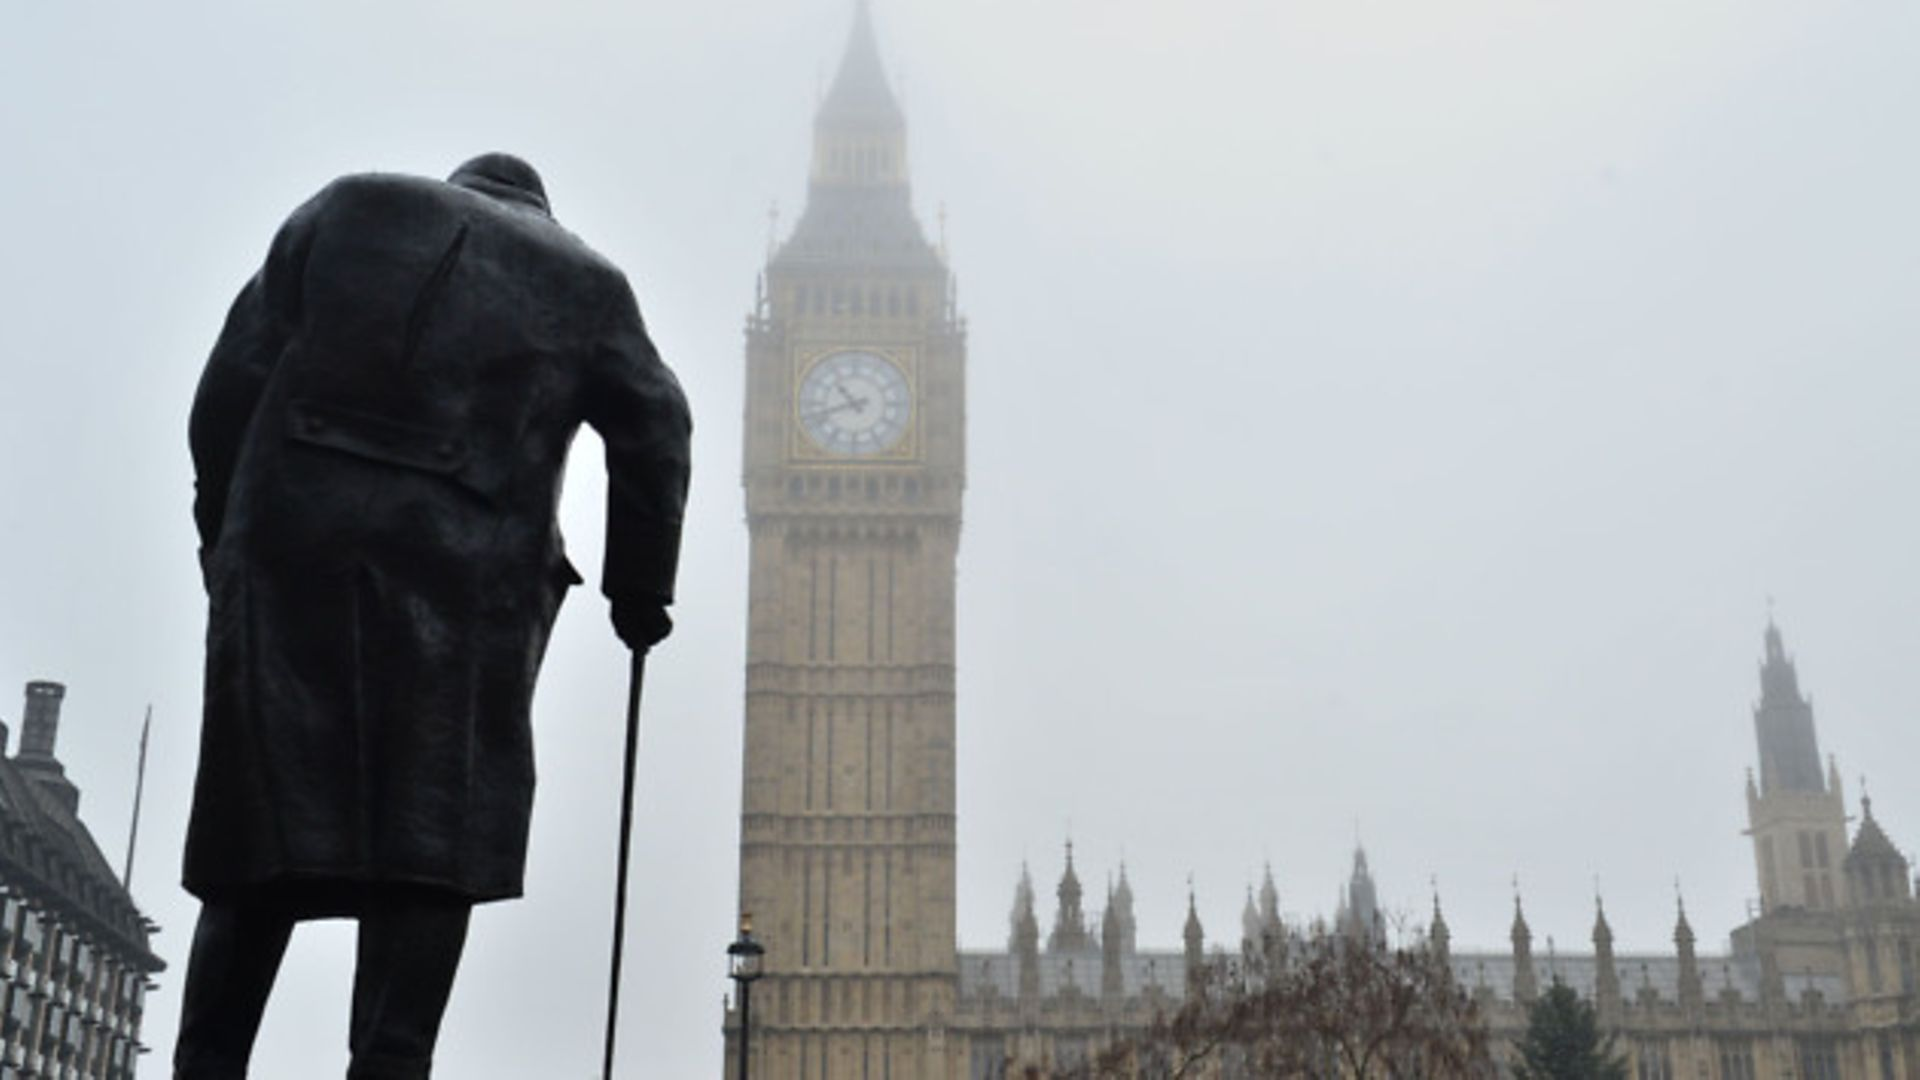 The statue of Winston Churchill in Parliament Square and the Houses of Parliament - Credit: PA Wire/PA Images